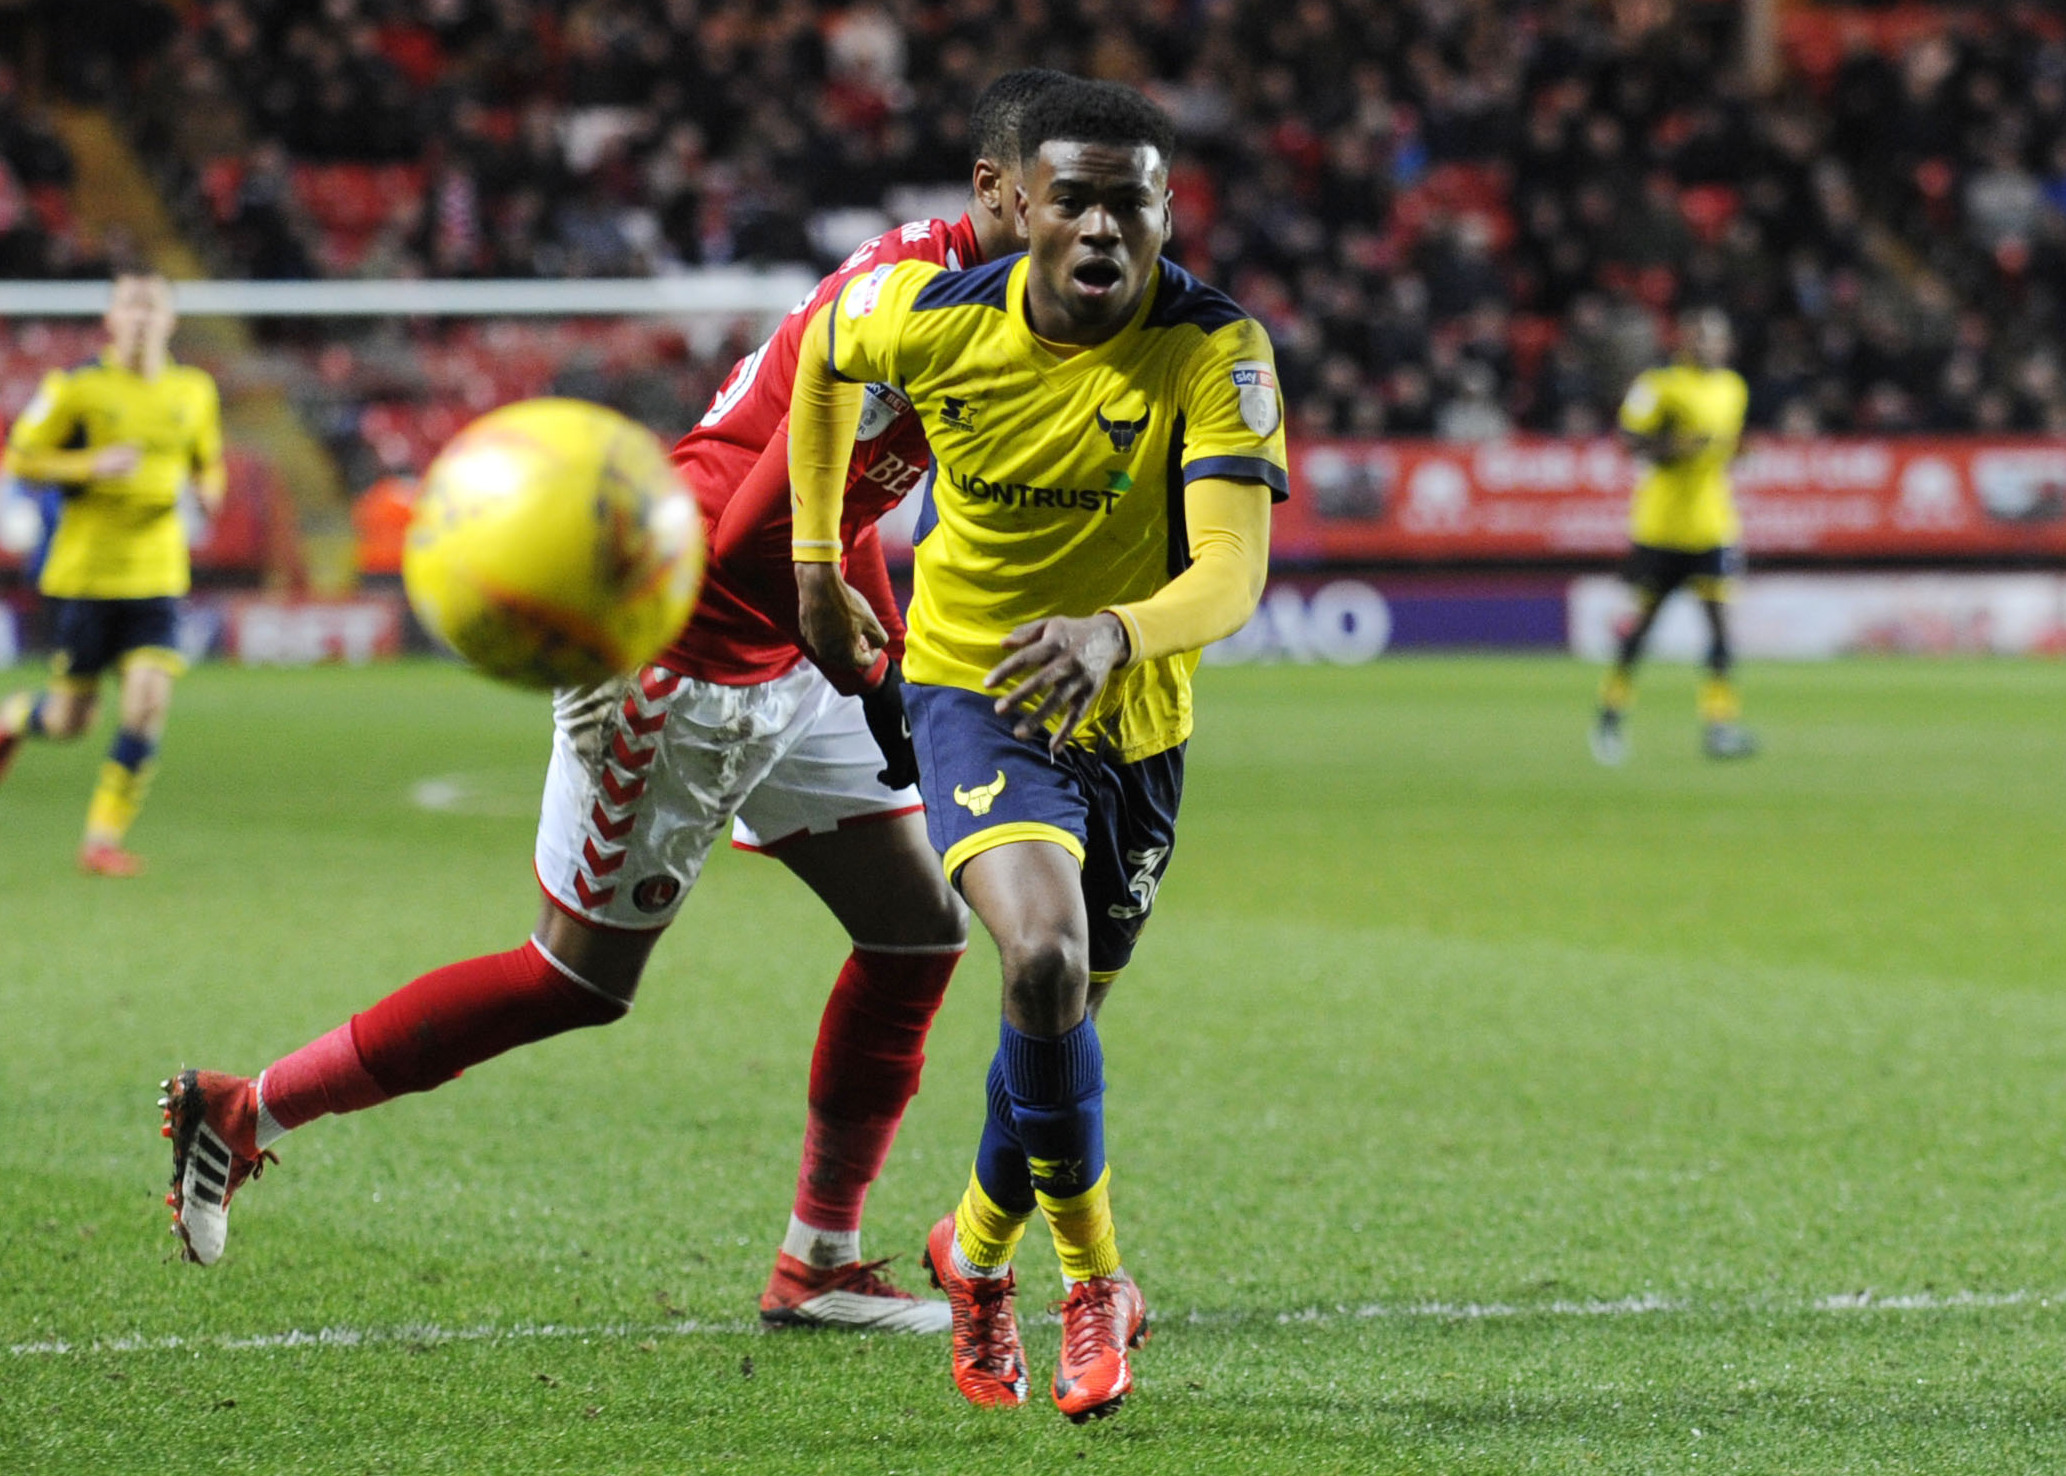 ON THE ATTACK: Malachi Napa chases a loose ball at Charlton last weekPicture: David Fleming